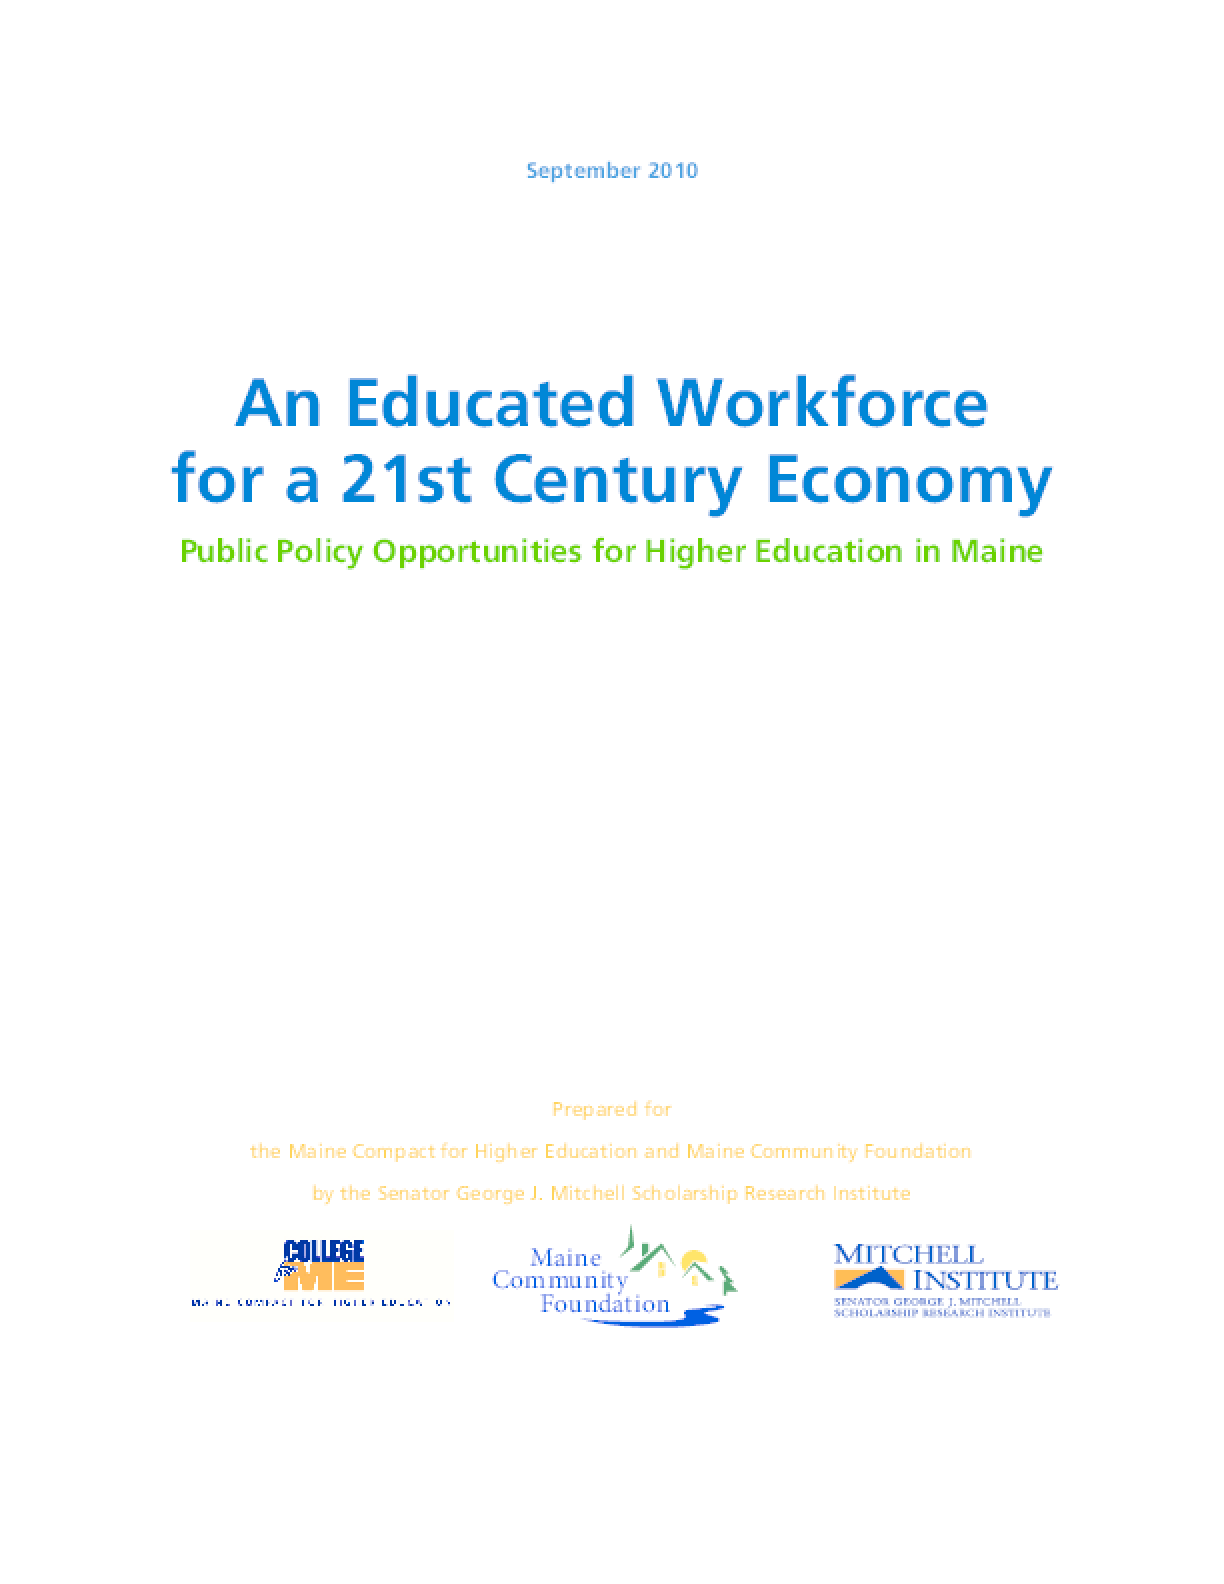 An Educated Workforce for a 21st Century Economy: Public Policy Opportunities for Higher Education in Maine